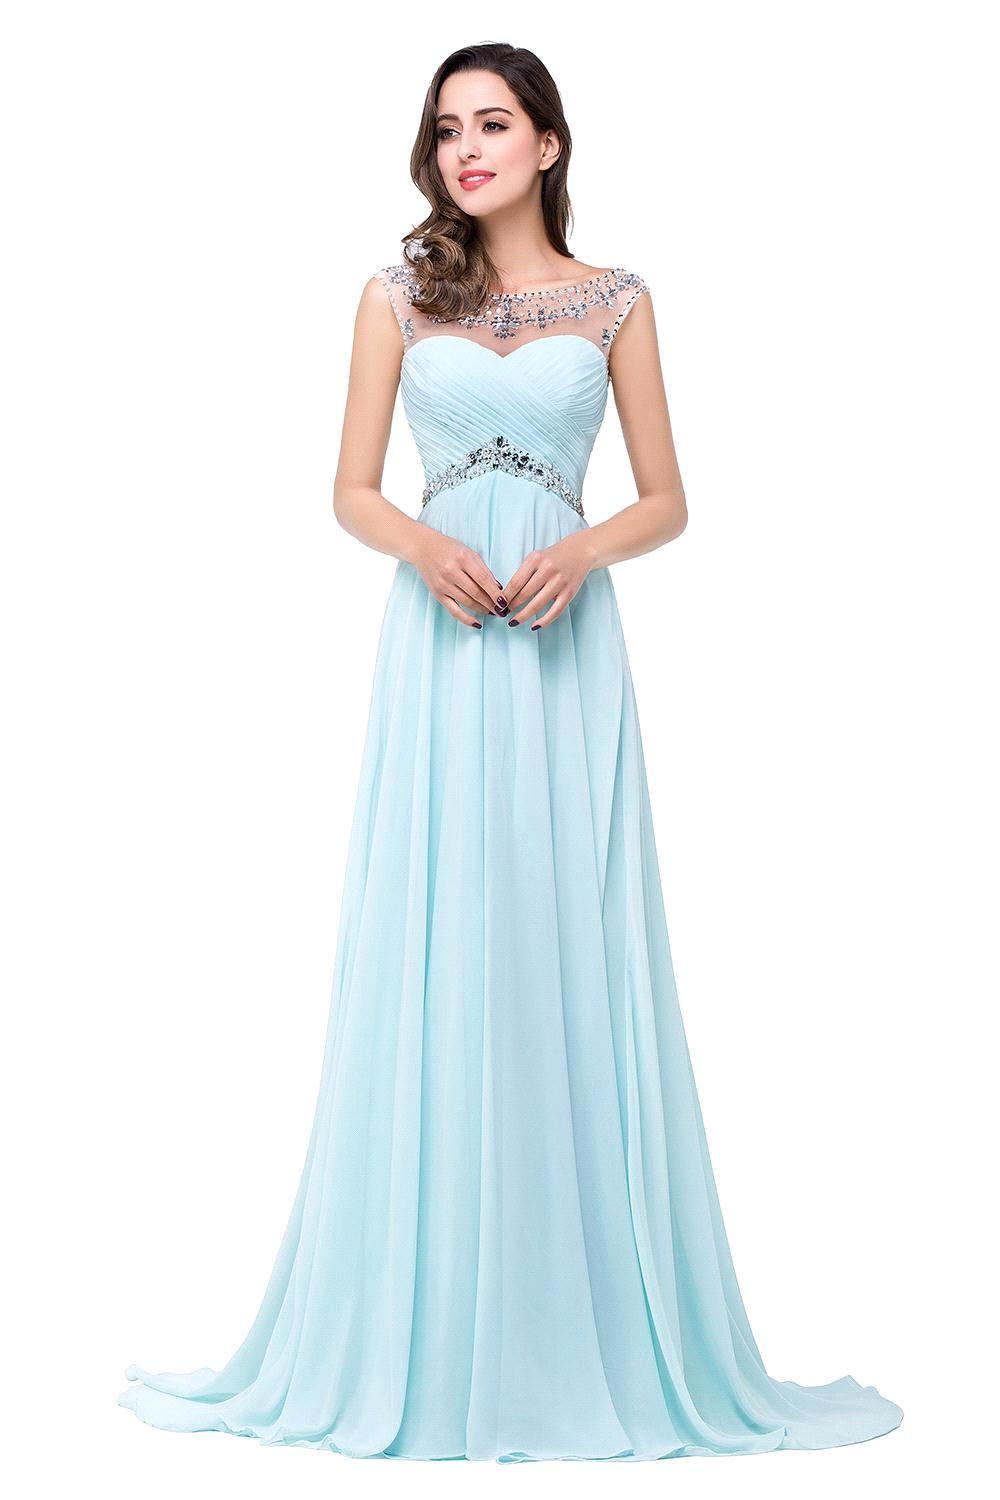 prom dresses under 50 dollars long_Prom Dresses_dressesss